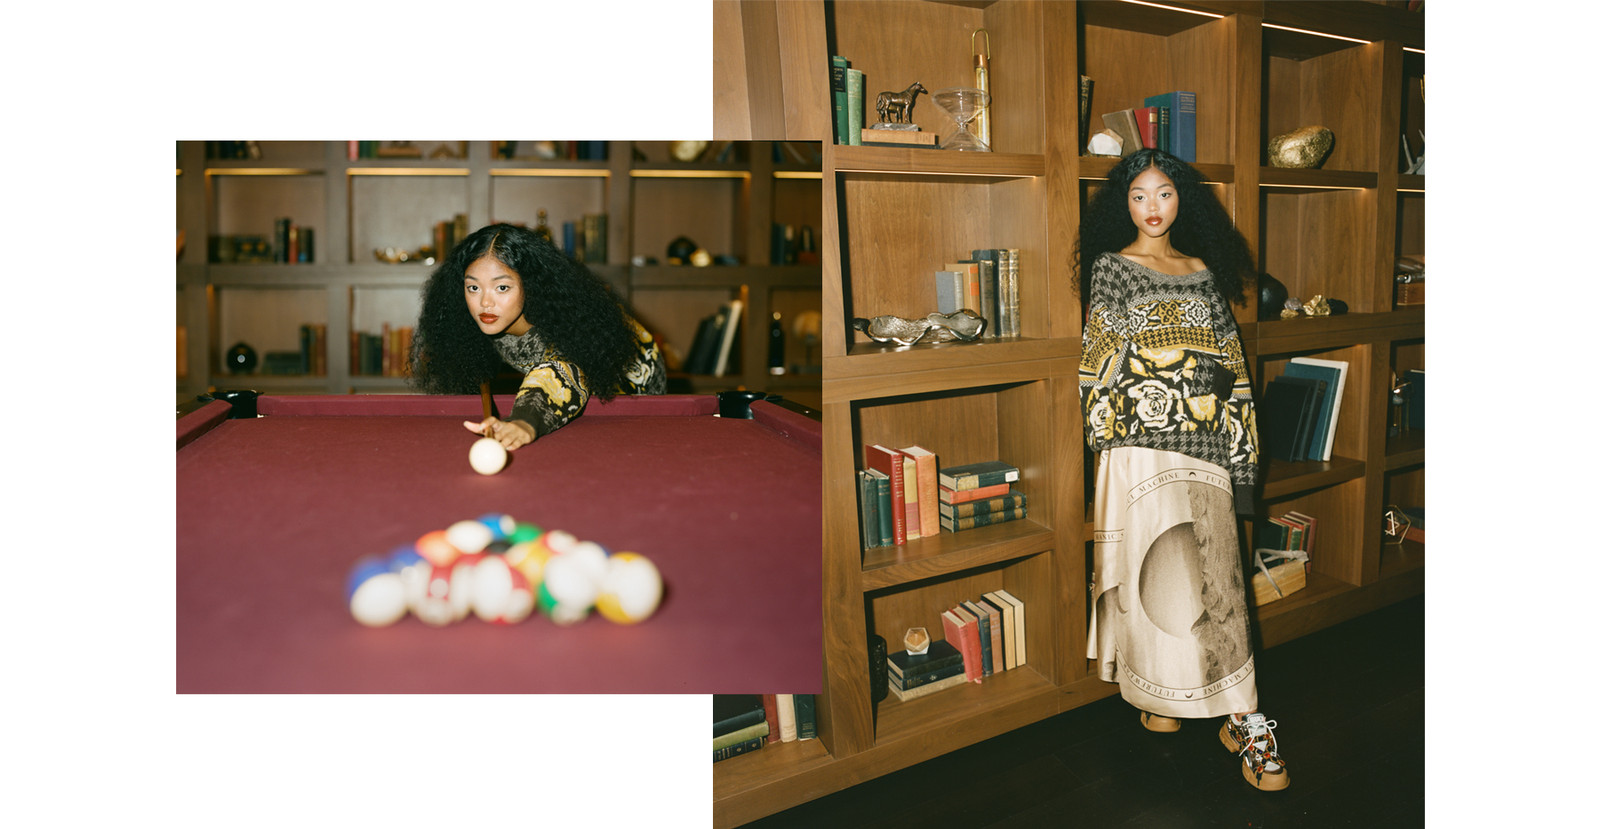 Ugly Christmas Sweater Holiday Editorial MSGM Dress White Blue Yellow Ciana Parks Family Management Model D/6 Bar and Lounge Vancouver Canada